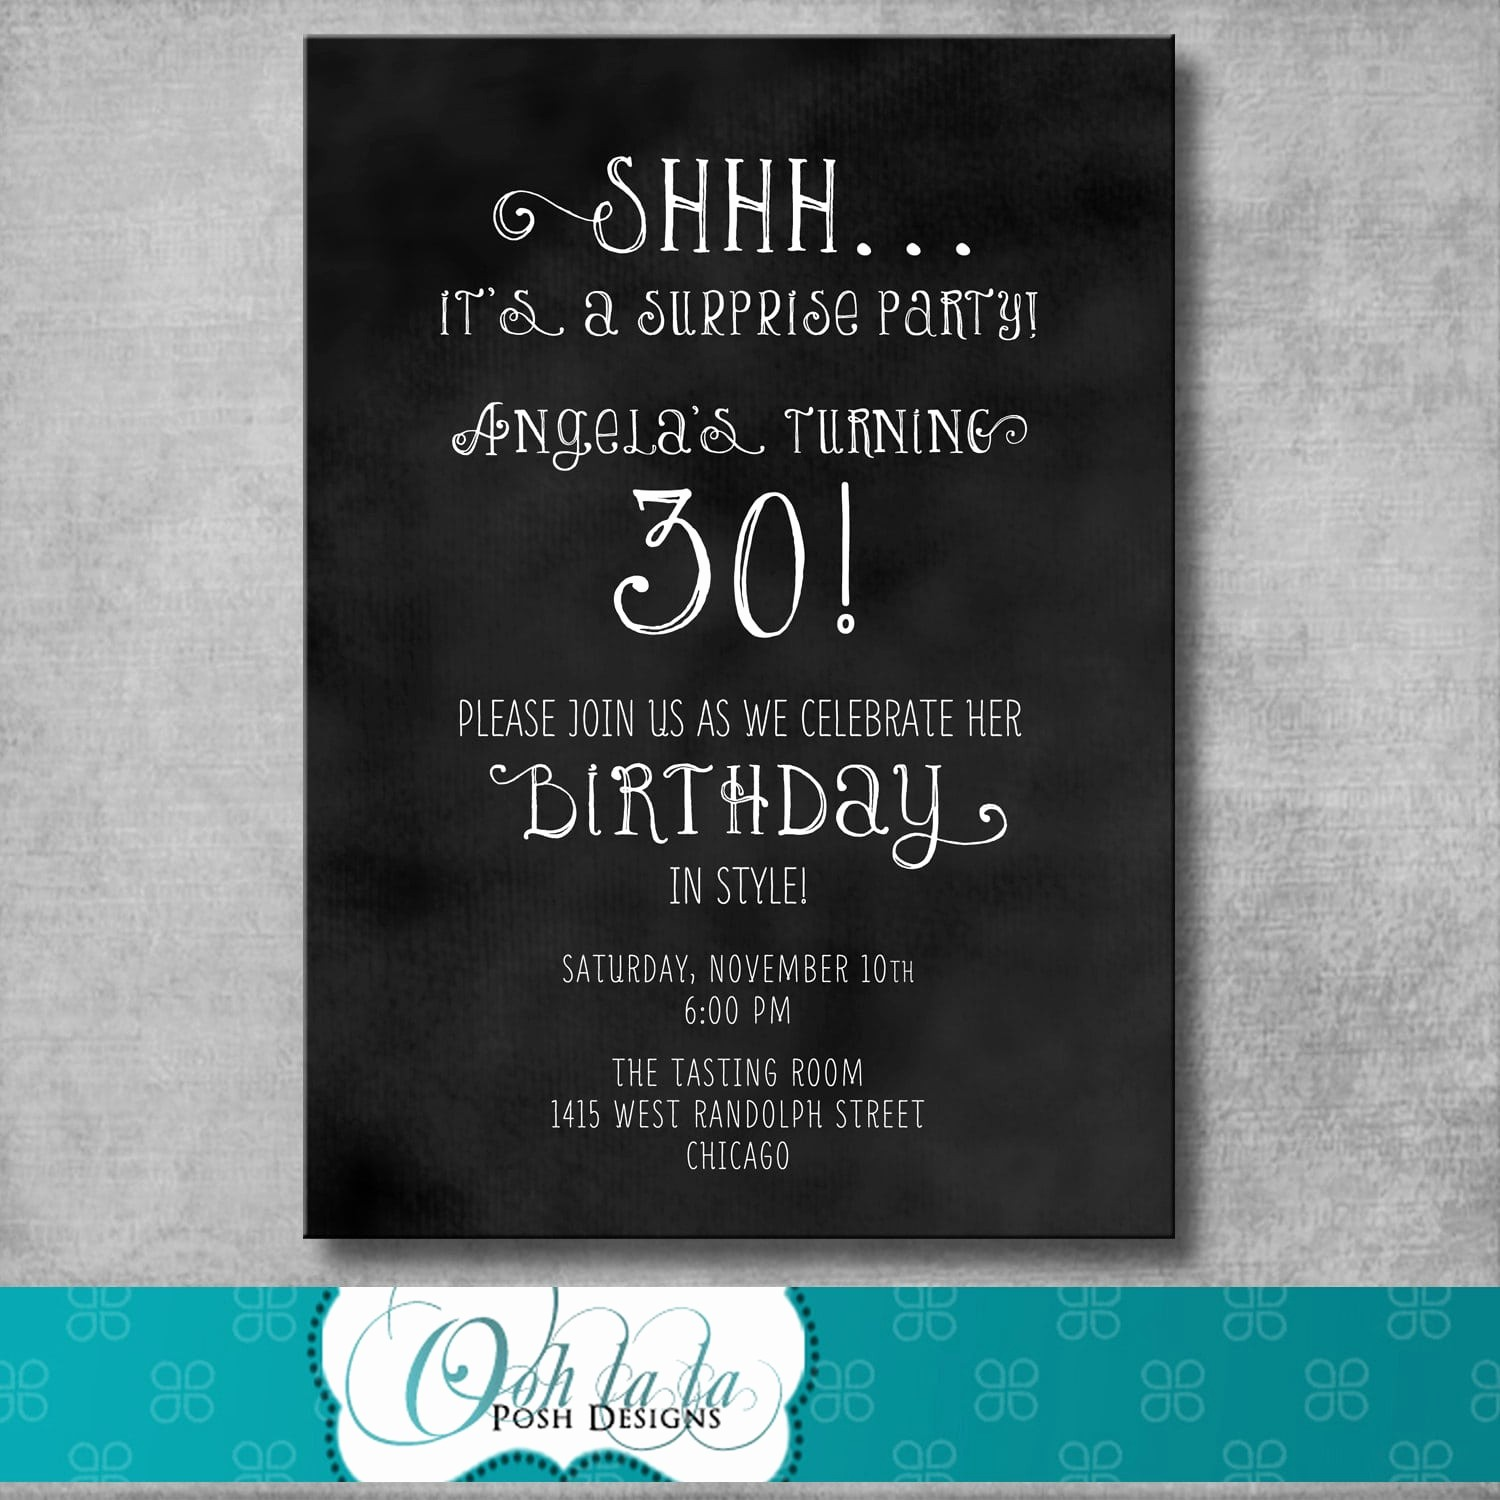 Surprise Birthday Party Invitation Template Unique Free Printable Surprise Party Invitation Template